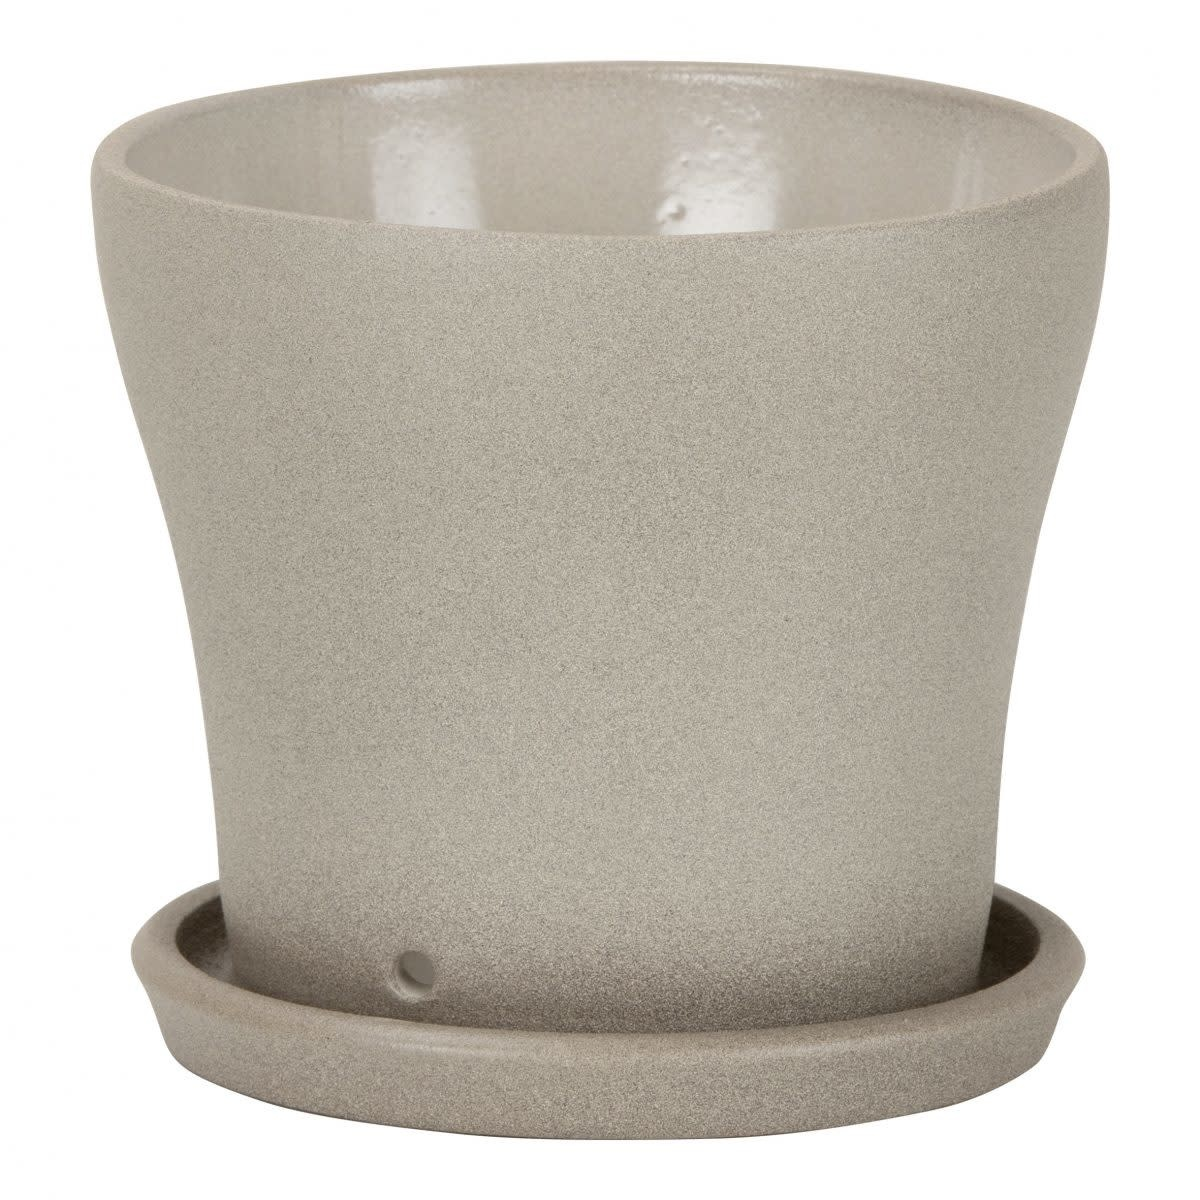 Pot soucoupe taupe stone-1